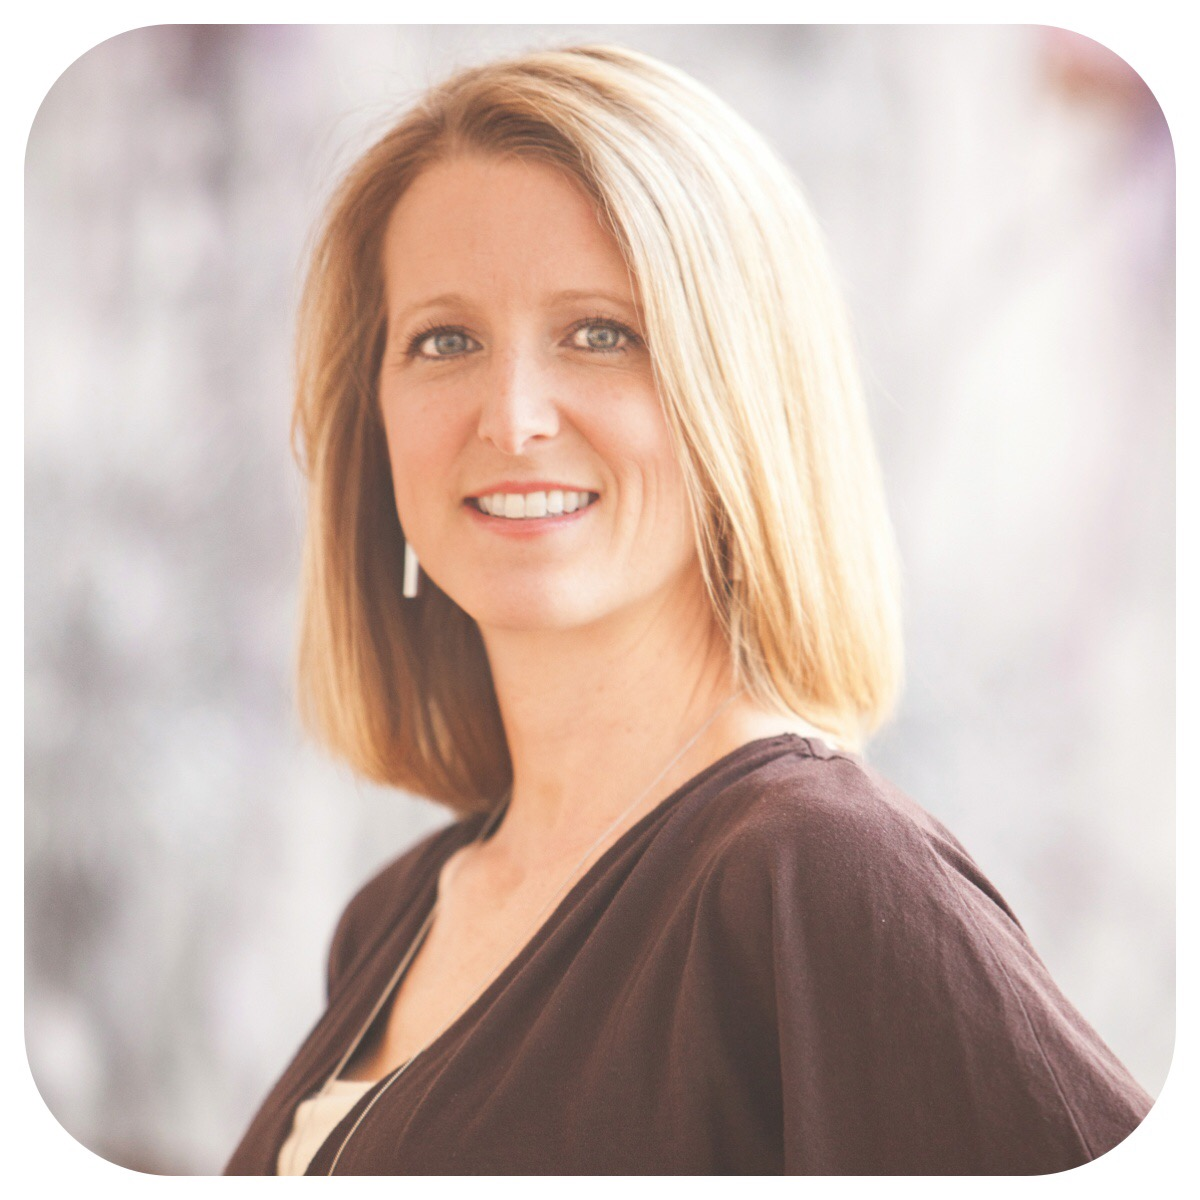 Healthy Living Now - Carolyn Coffin - Contributors - Meet Our Team